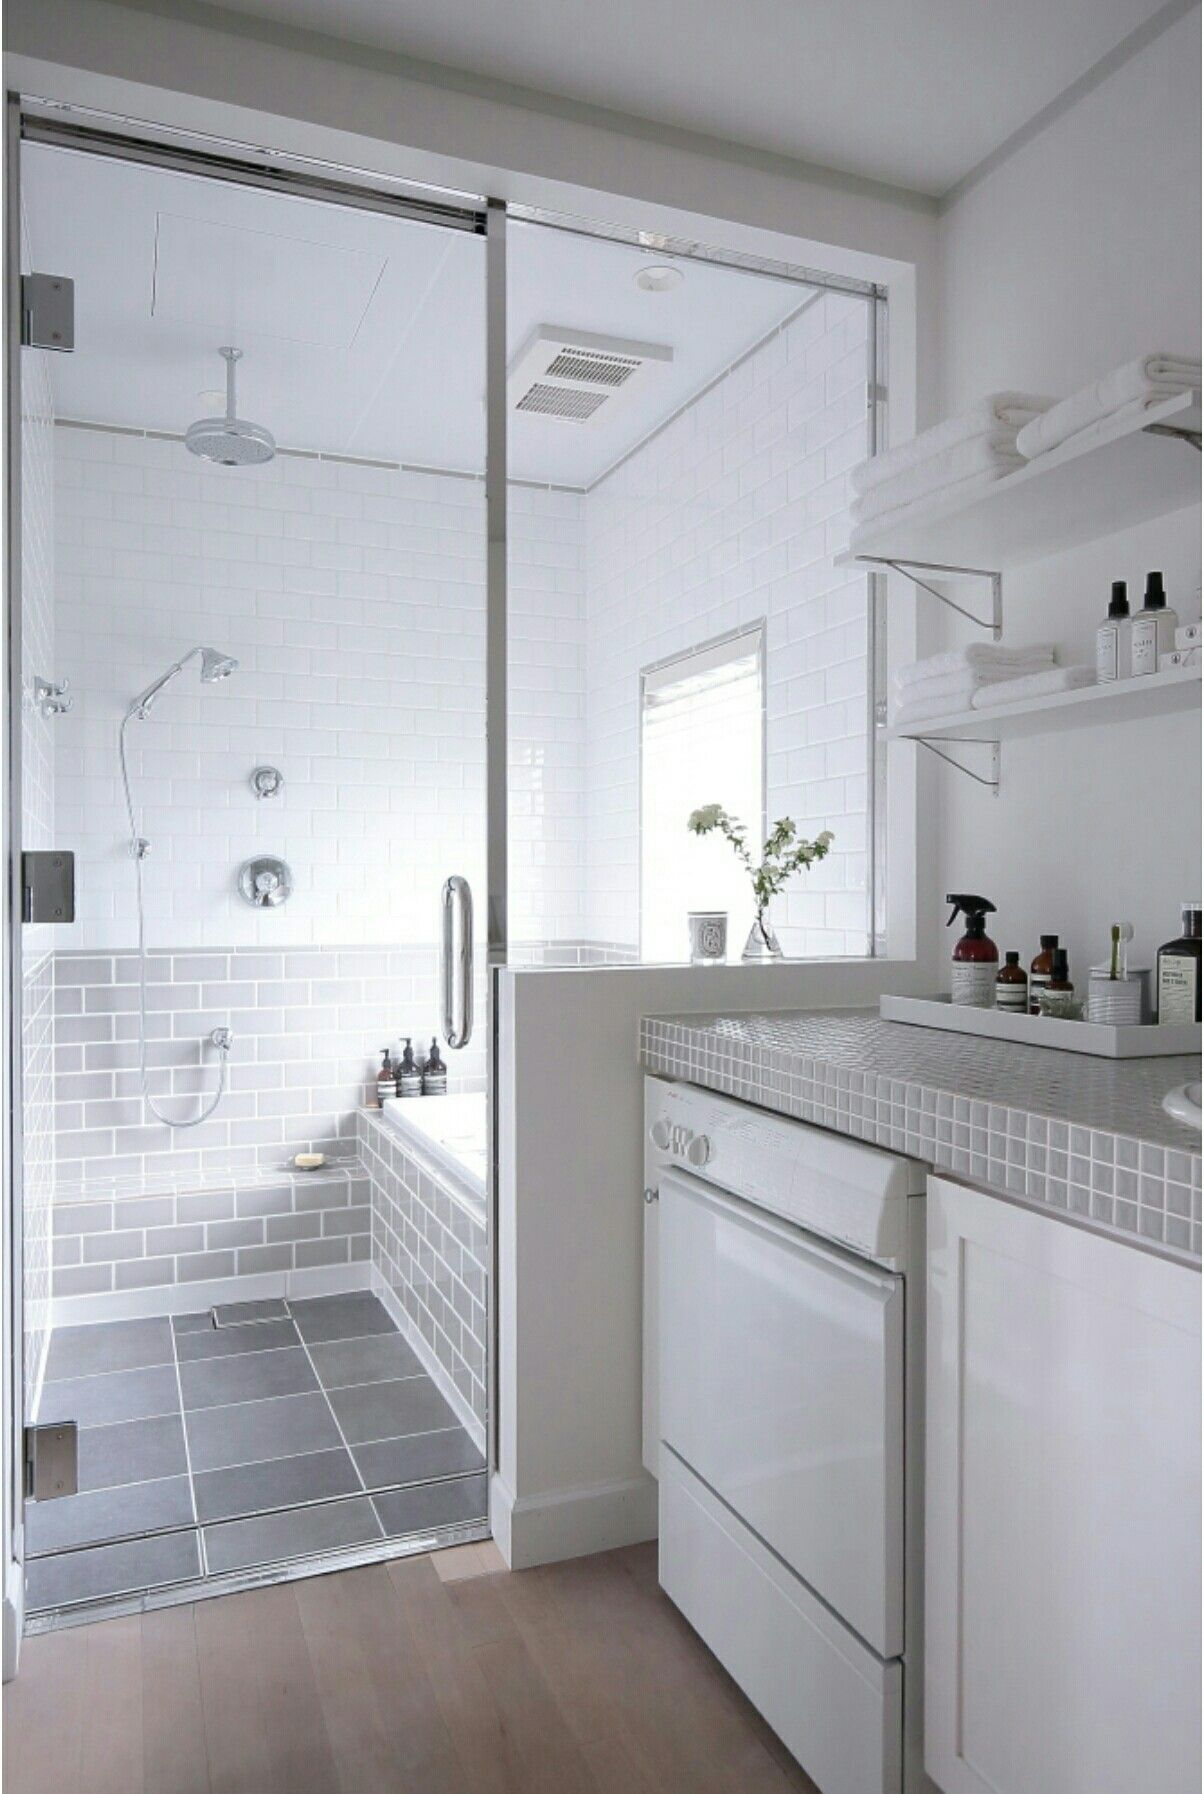 Pin by burongwu on home | Pinterest | Shower tub, Tubs and Spaces Wet Dry Bathroom Designs on kitchen design, wet playground design, wet sauna design, small toilet room design, small shower room design, water heater design, painting design, refrigerator design, wet floor design, wet wall design, wet kitchen, disability home design, wet spa design,